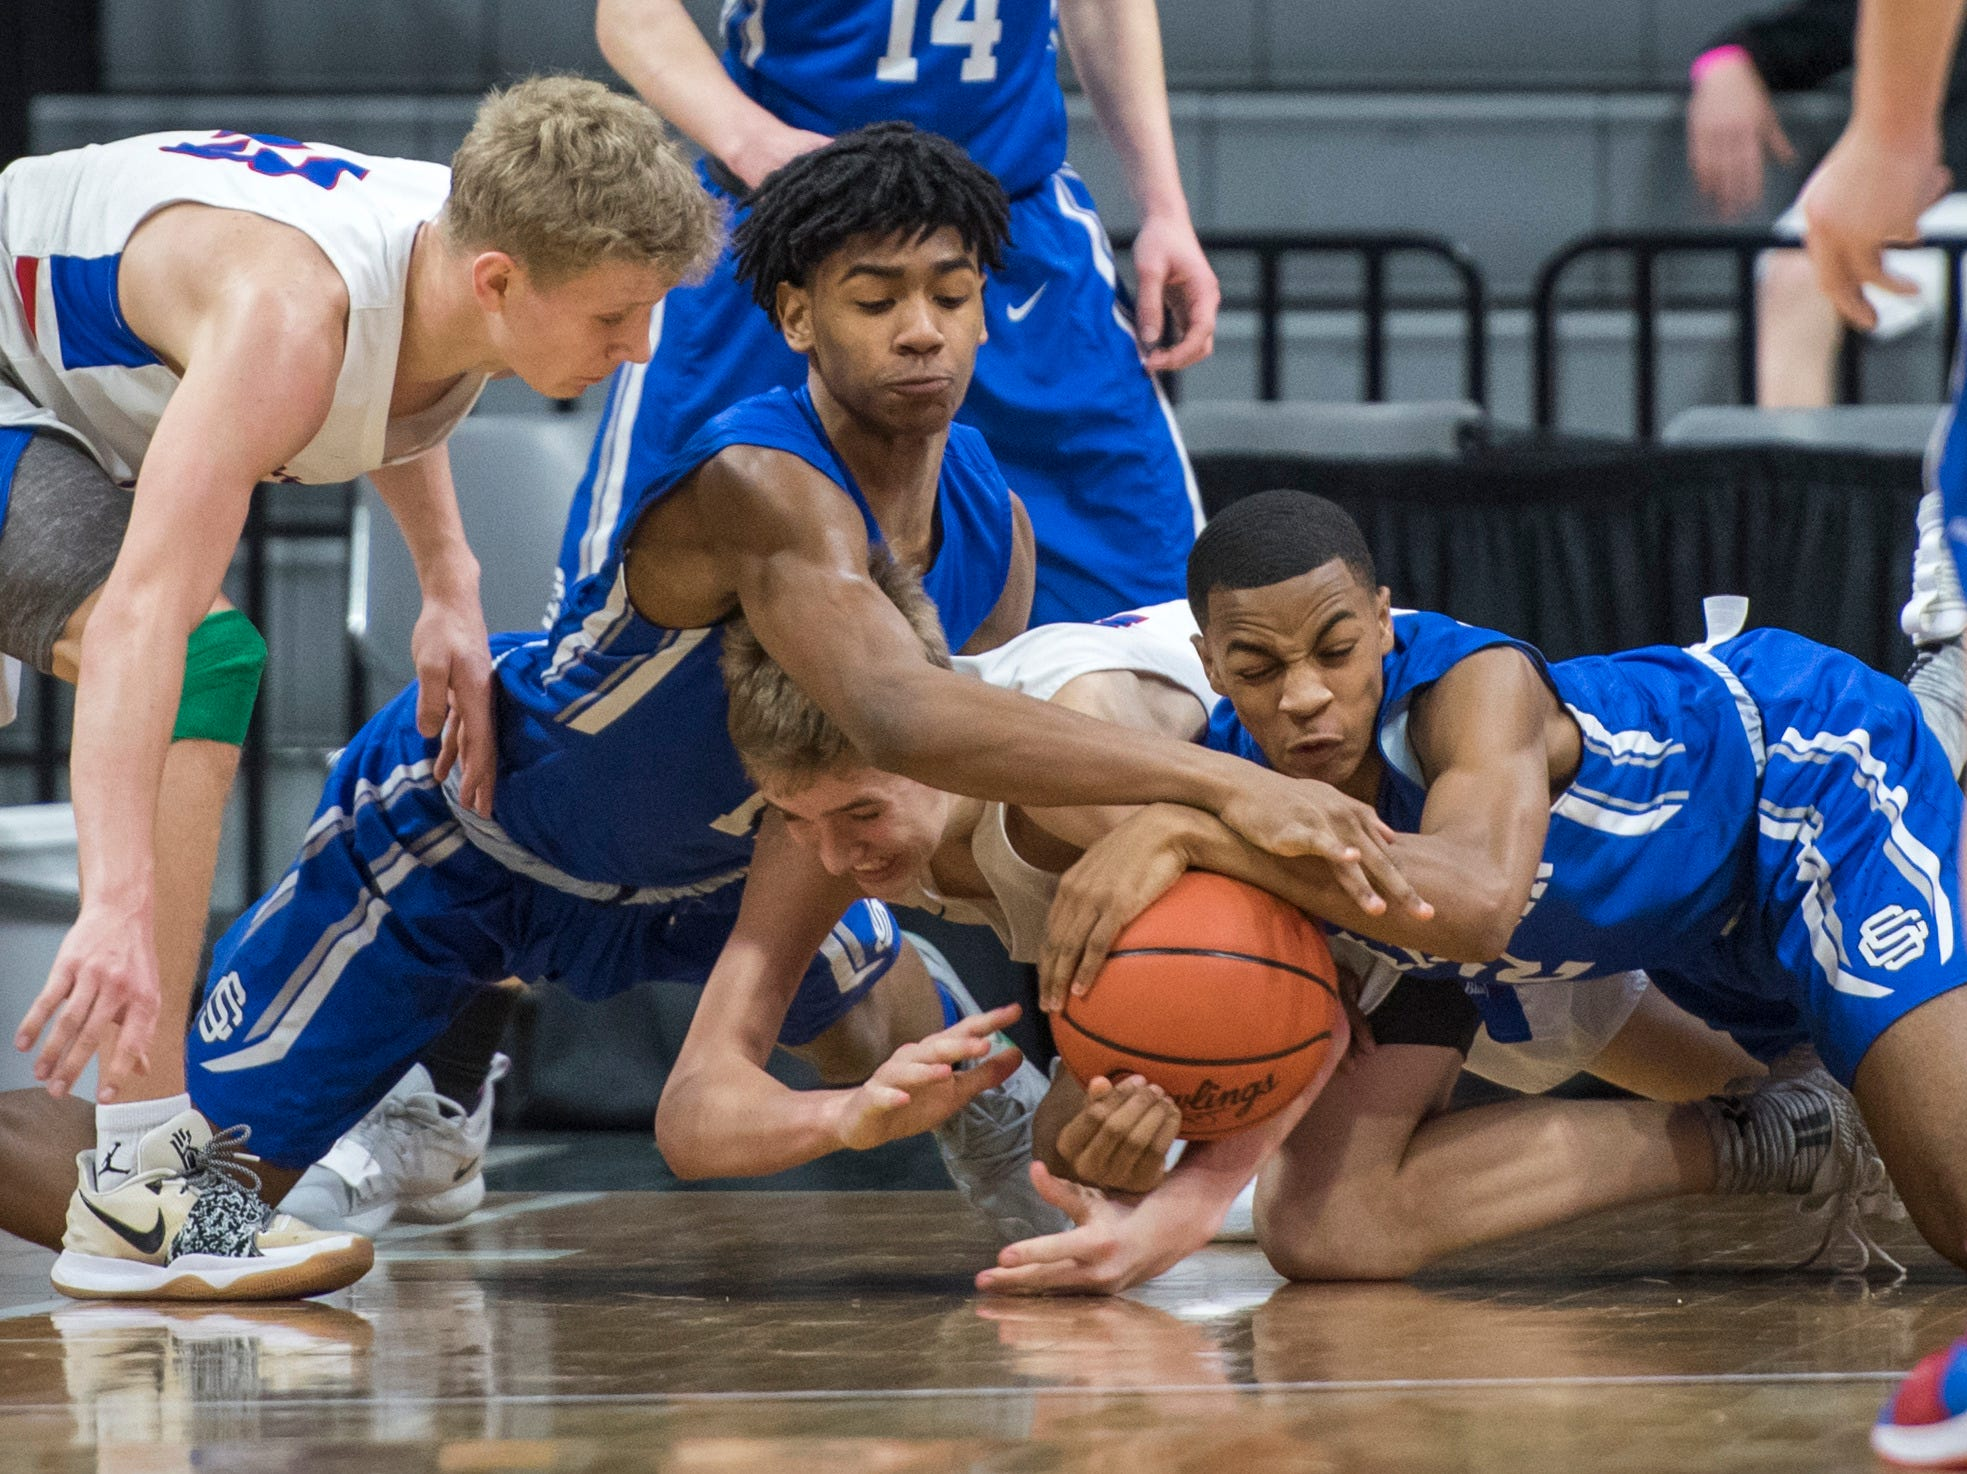 Southfield Christian's Malcolm King, Dollar Bay's Ashton Janke and Southfield Christian's Ronald Johnson fight for possession of the ball in the second half of the 52-28 Southfield victory in the Division 4 semifinals.